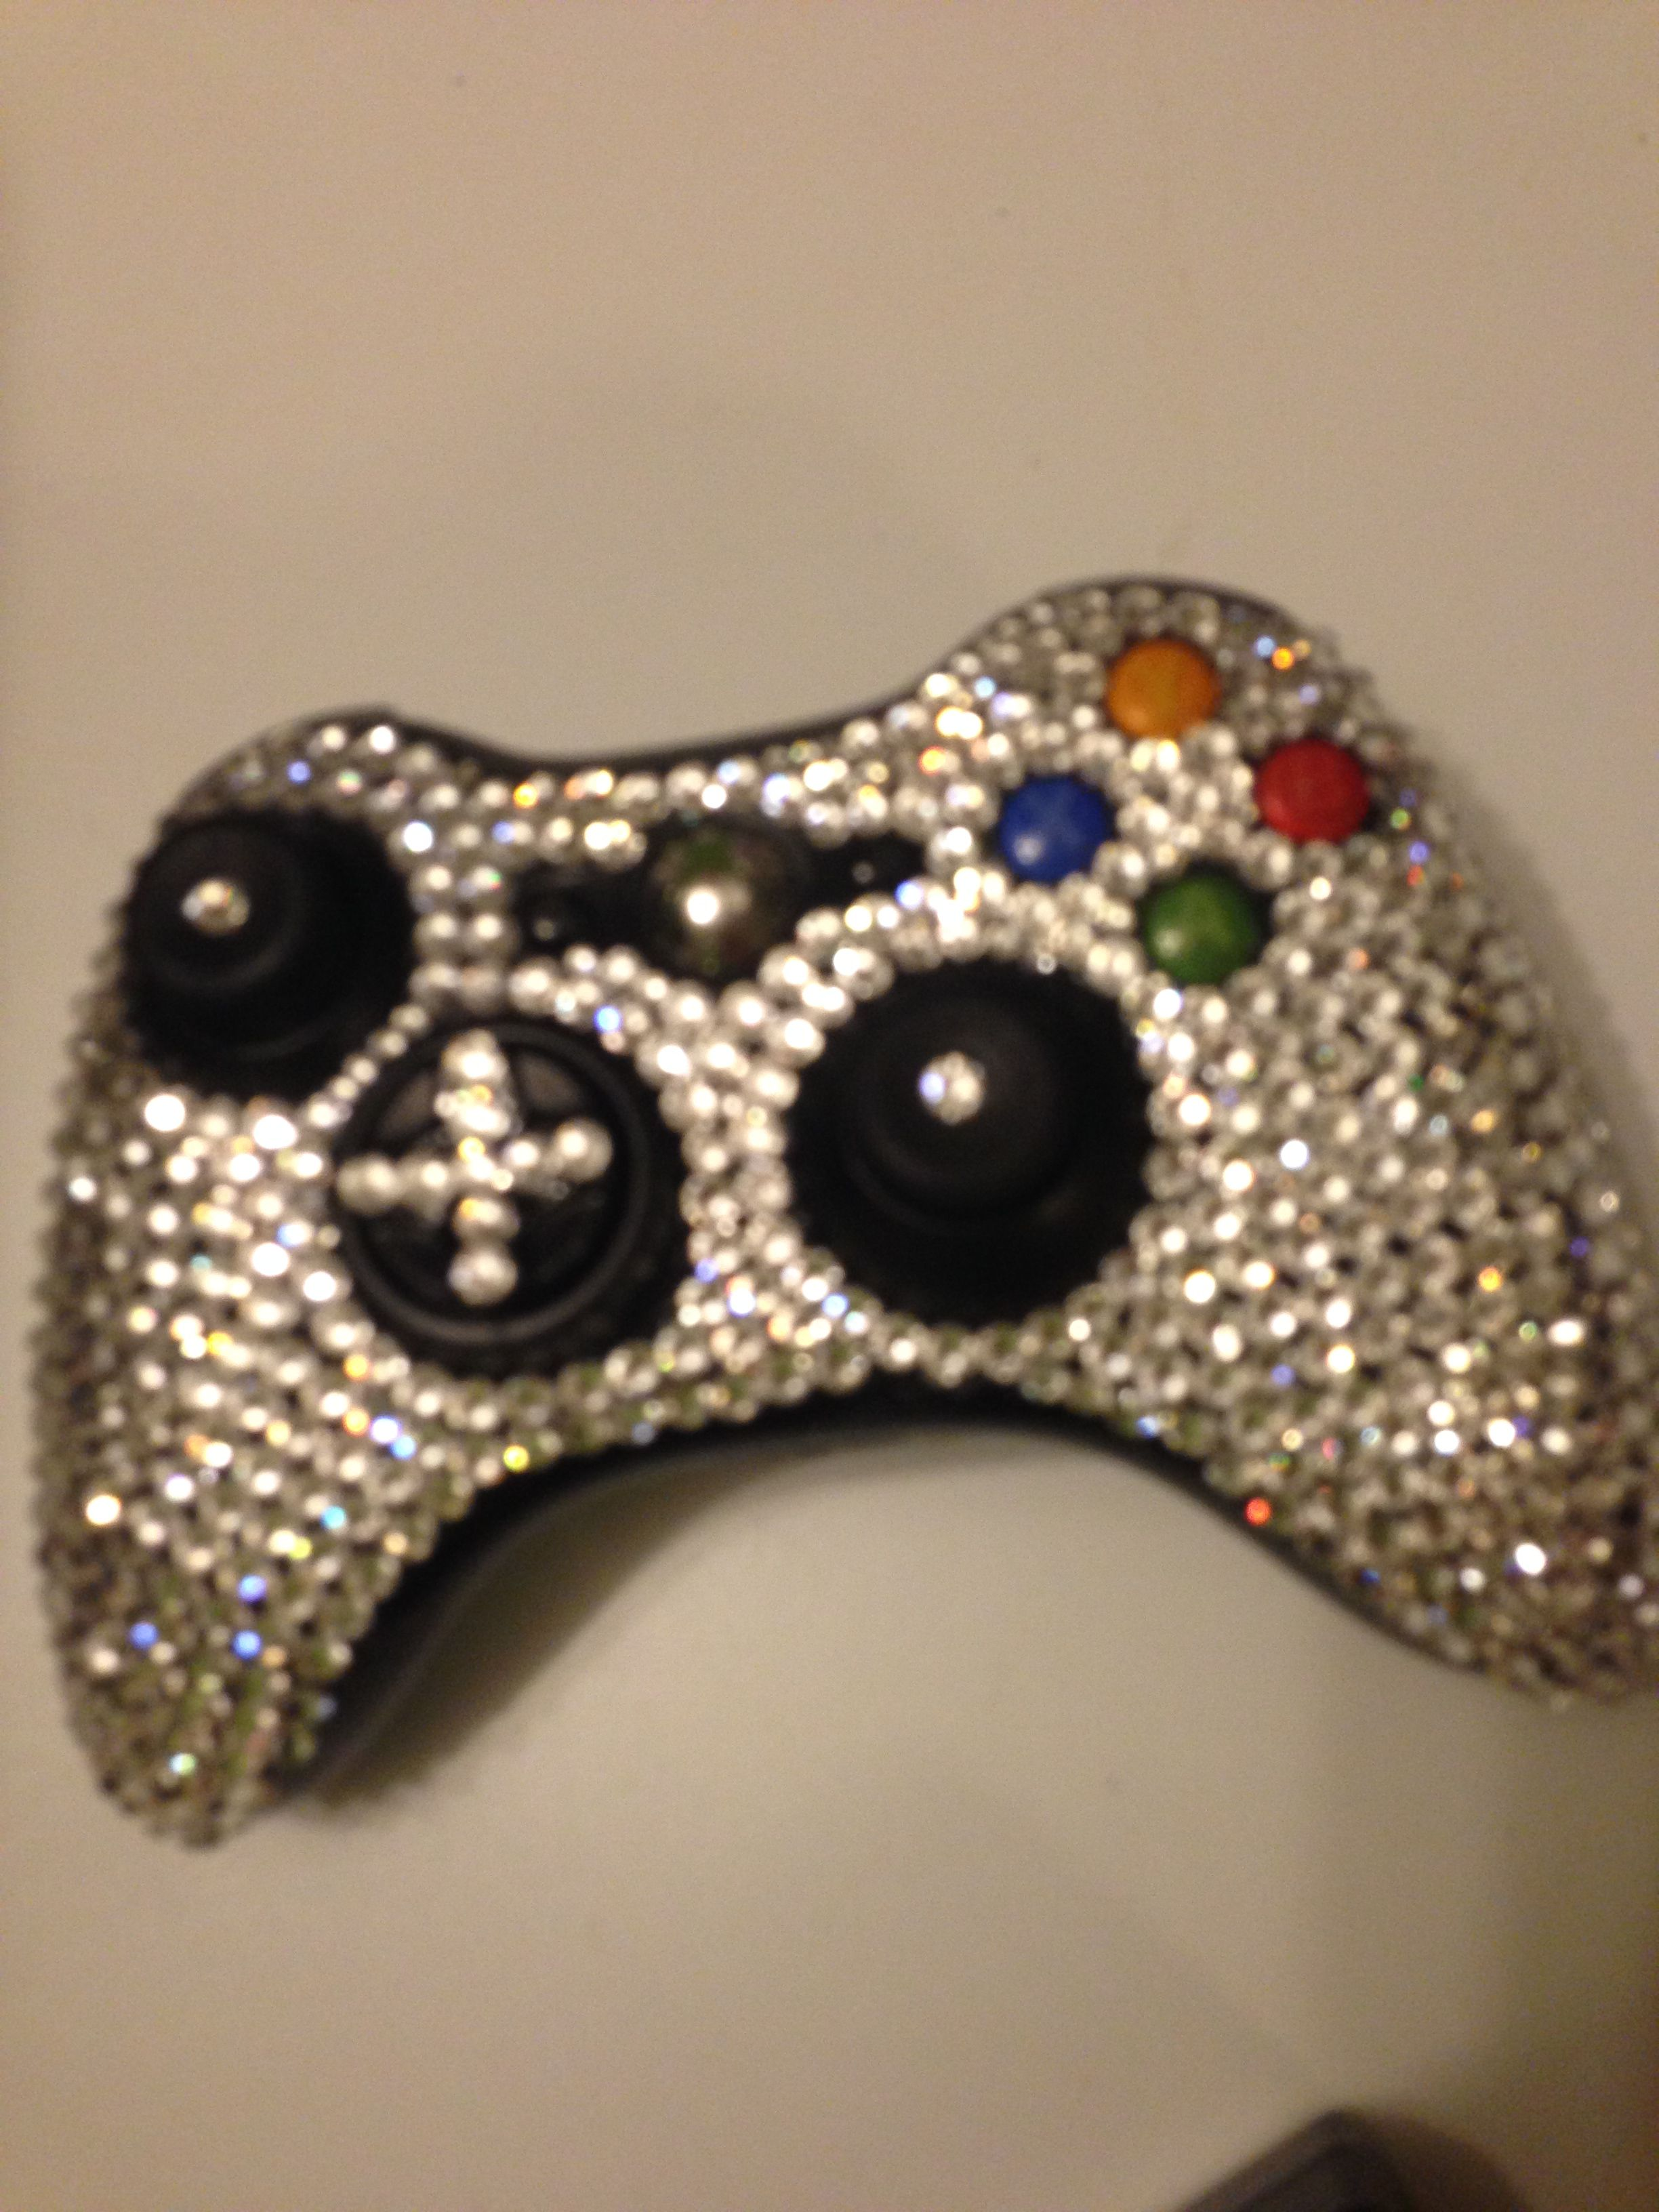 Xbox controller rhinestoned by yours truly